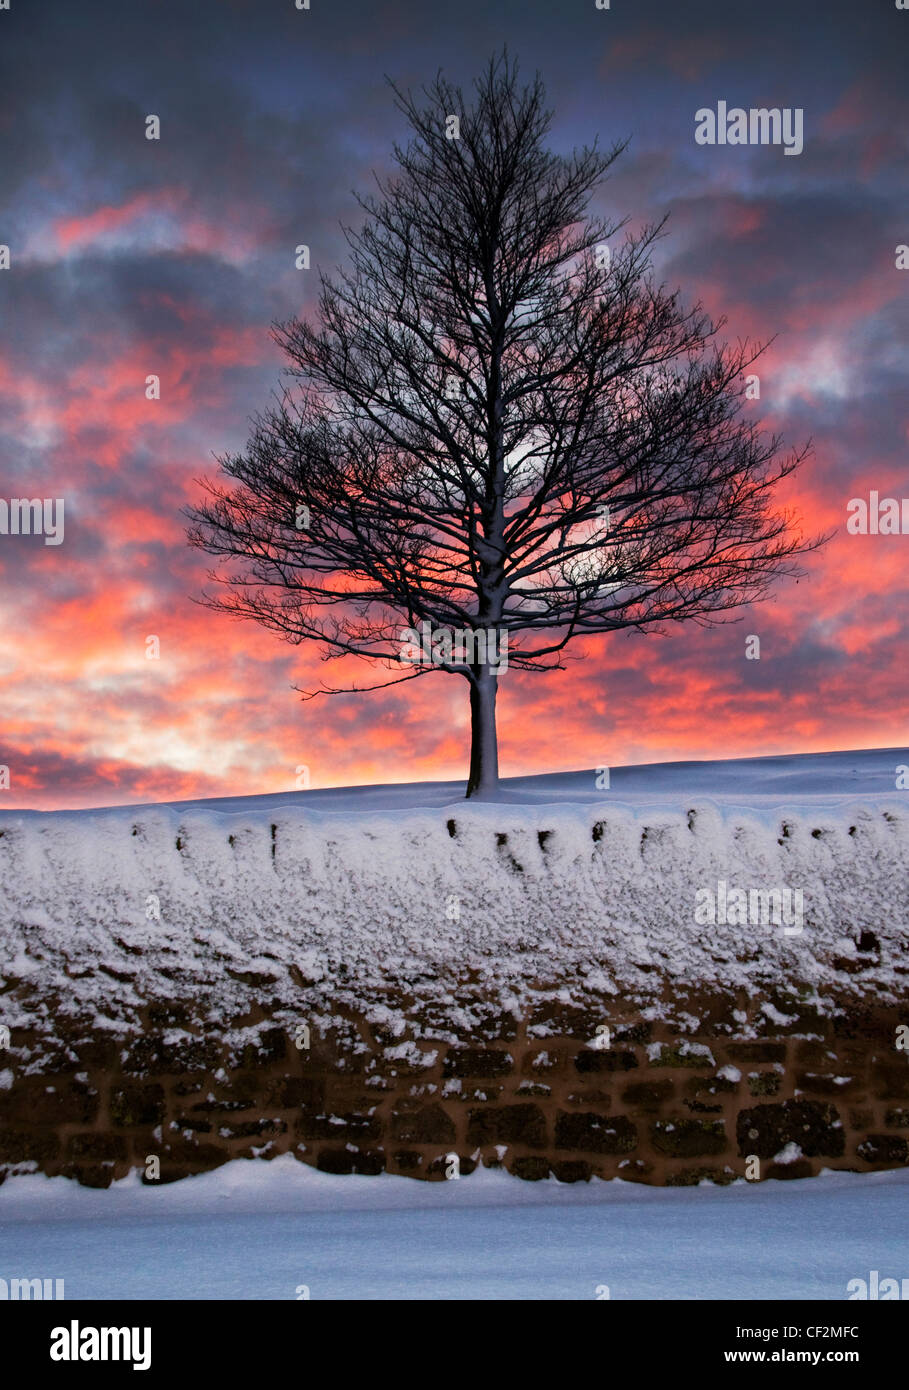 A lone, snow covered tree at sunset. - Stock Image